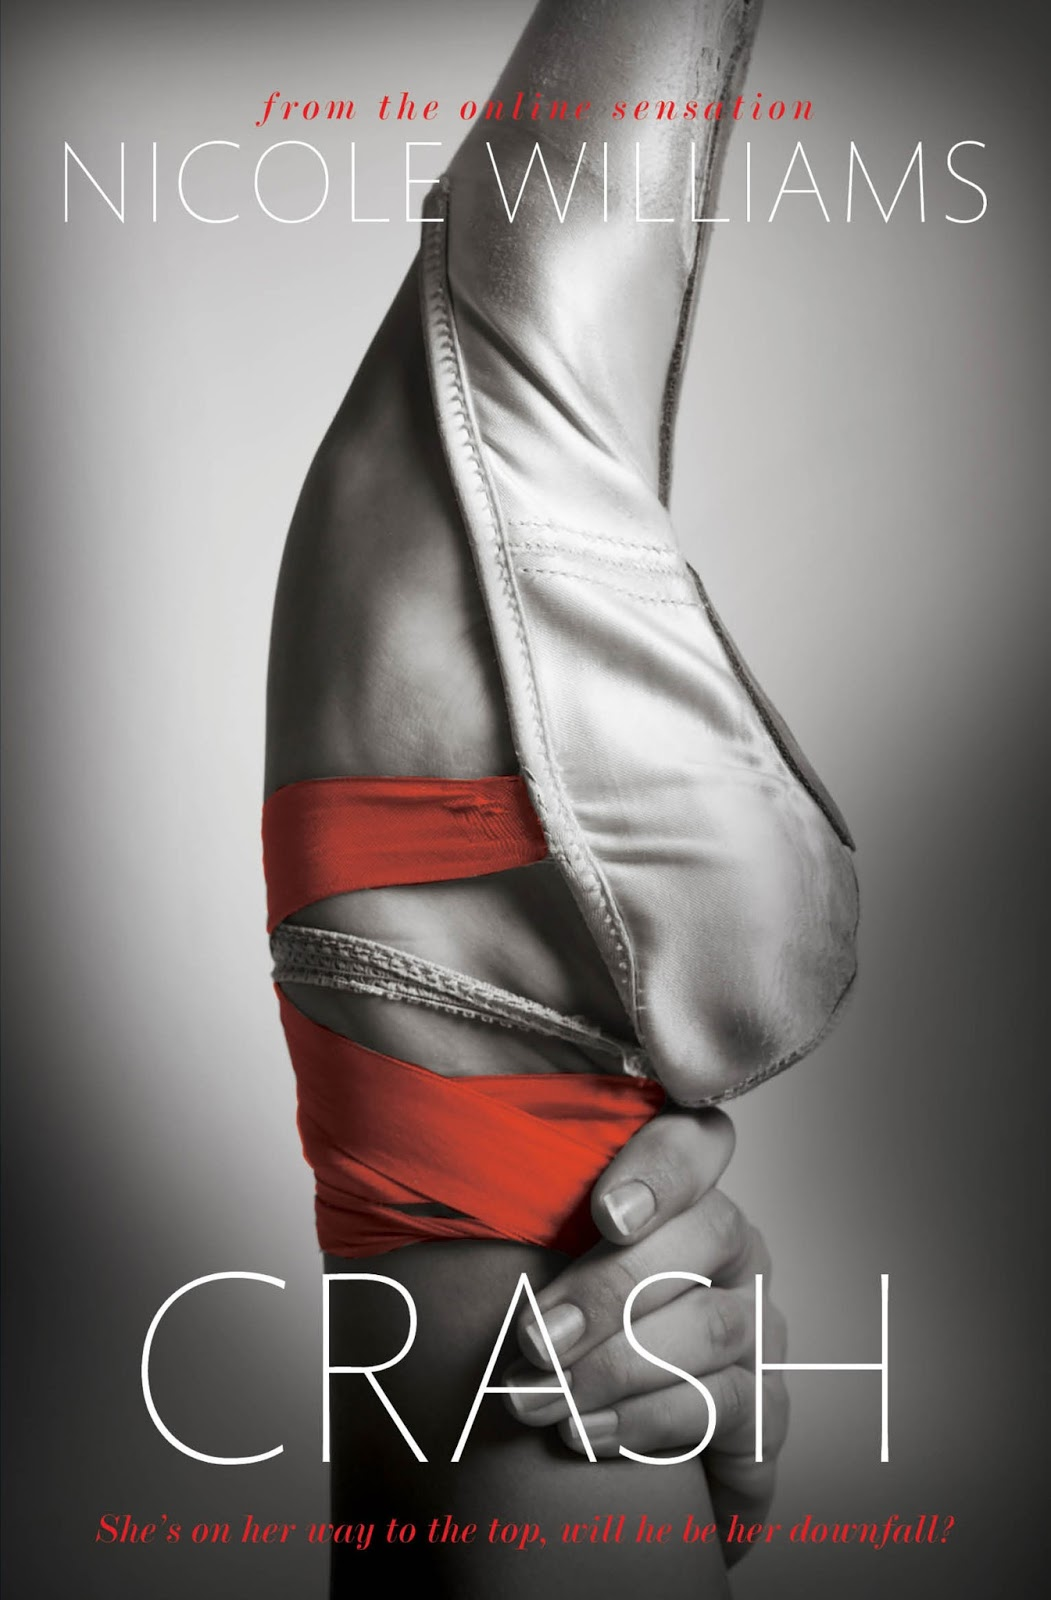 Crash Libro Jess Hearts Books Review For Crash By Nicole Williams